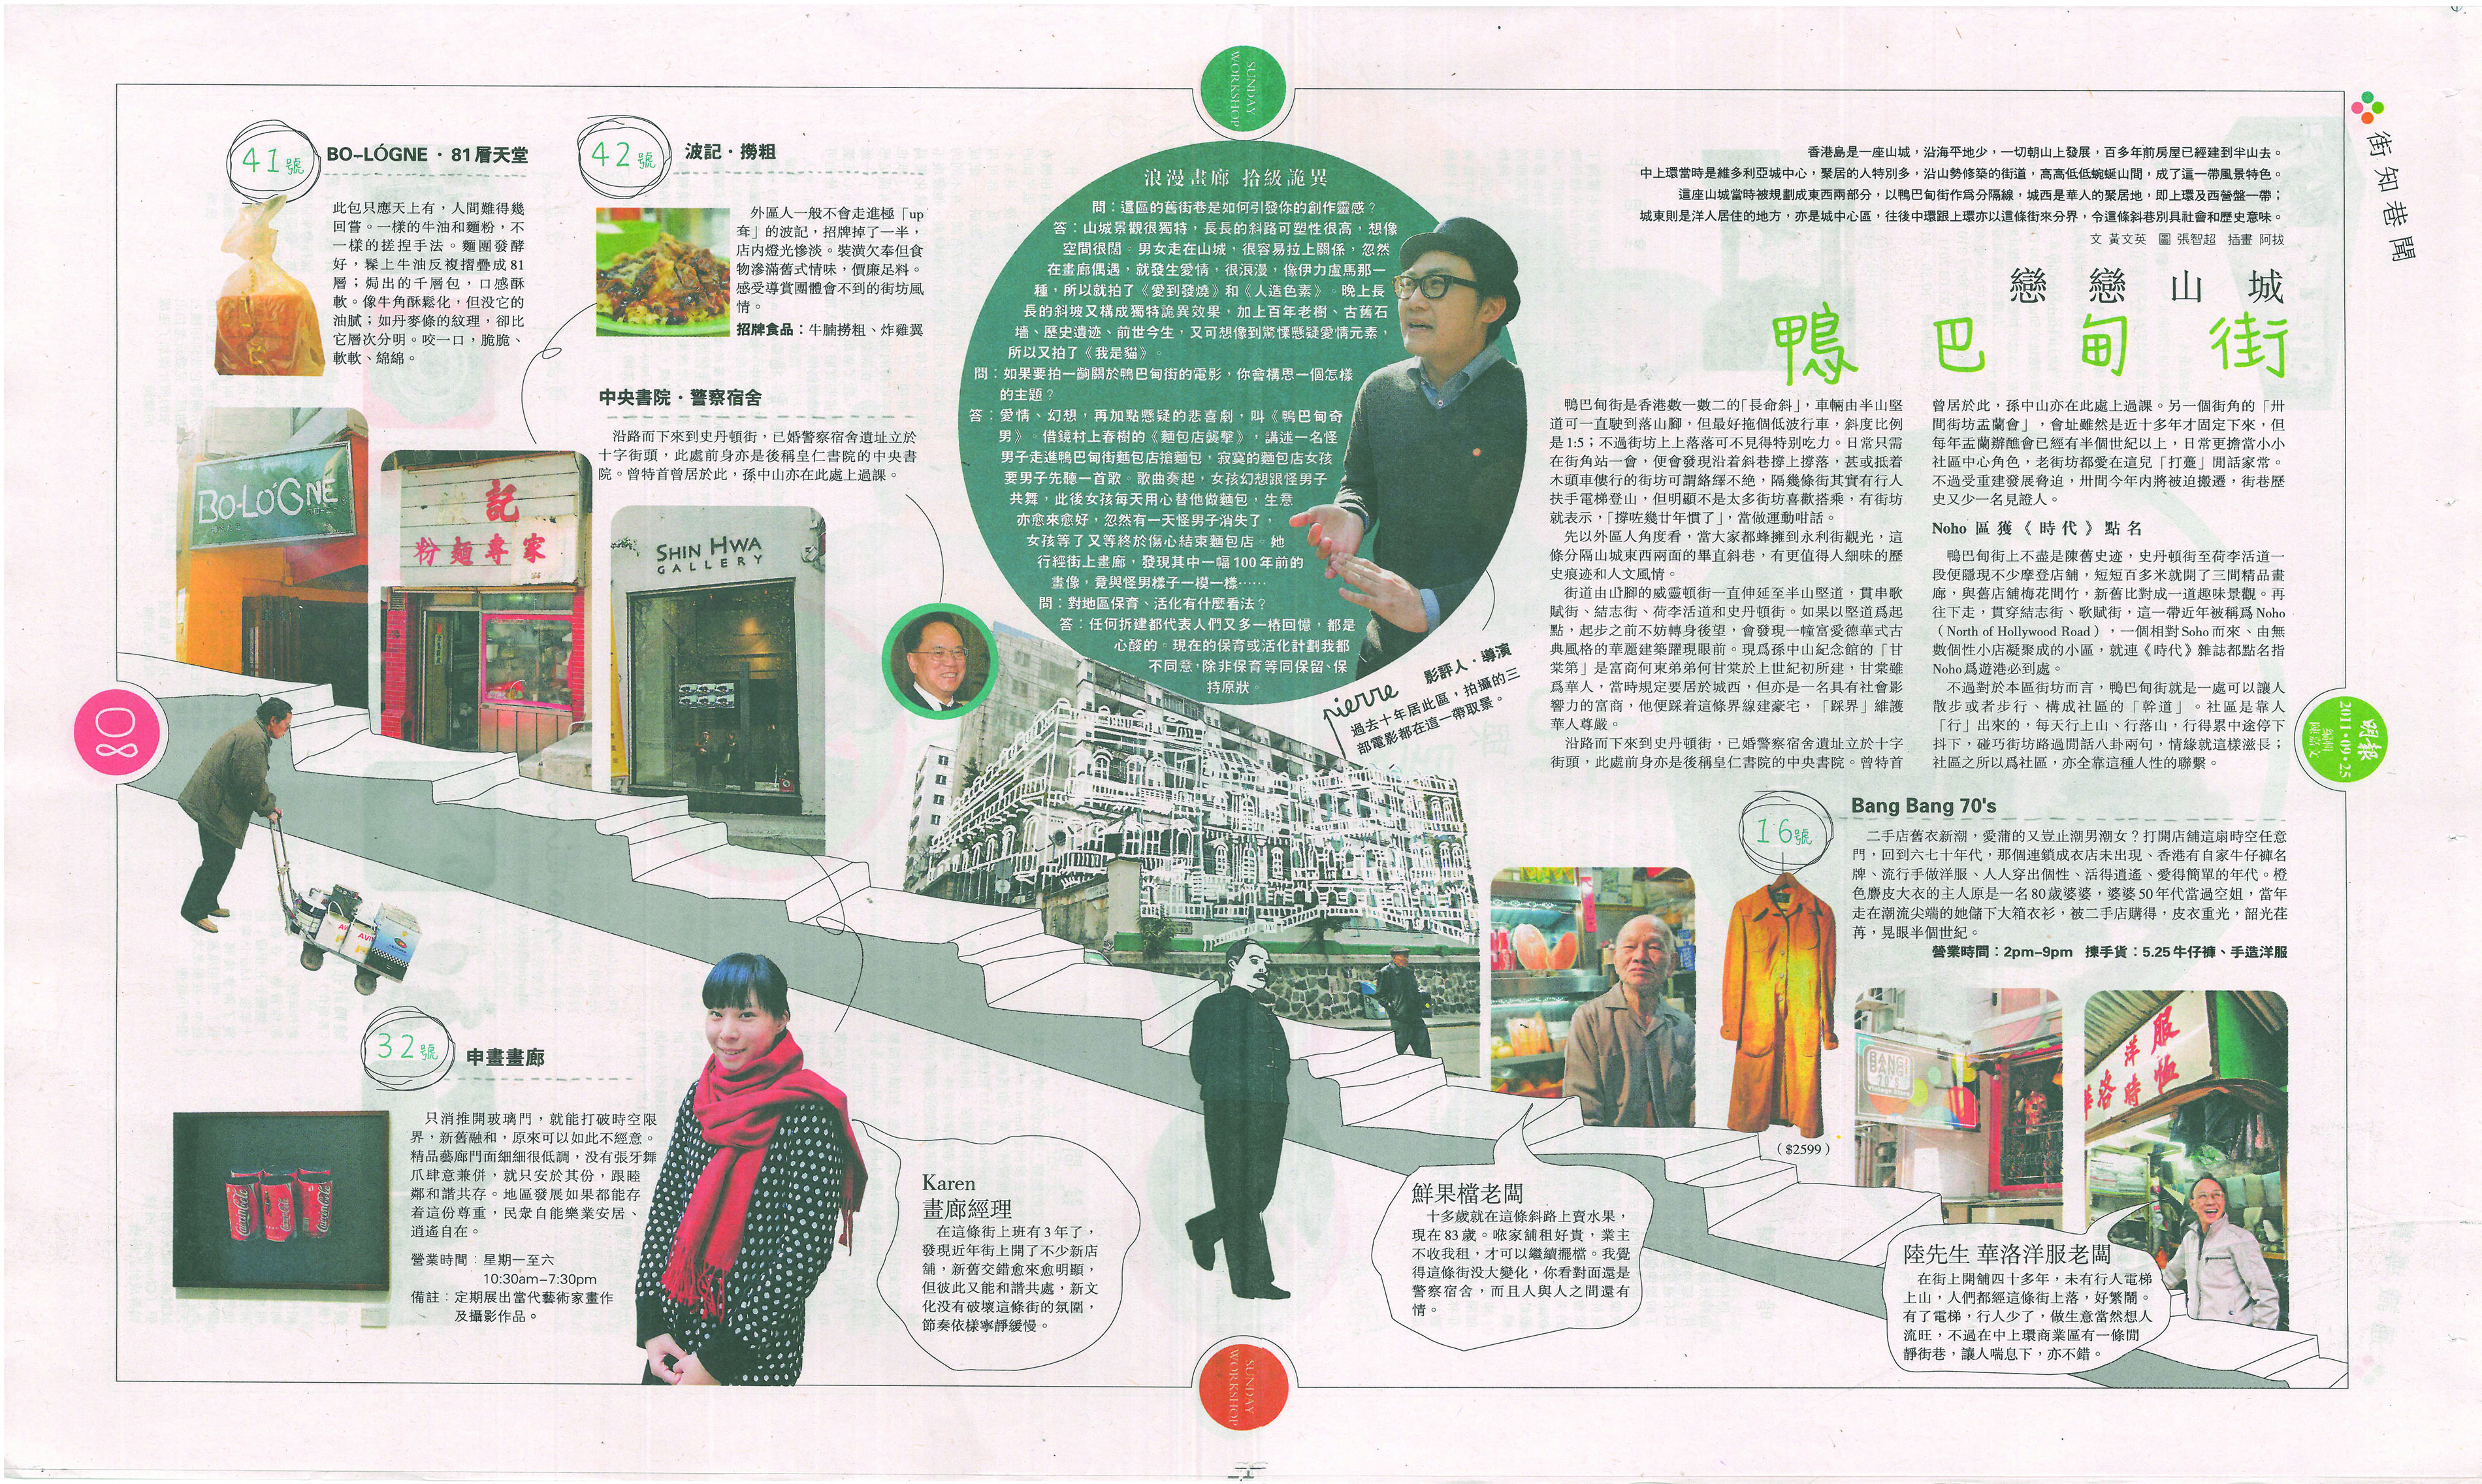 明報副刊. MingPao Newspaper